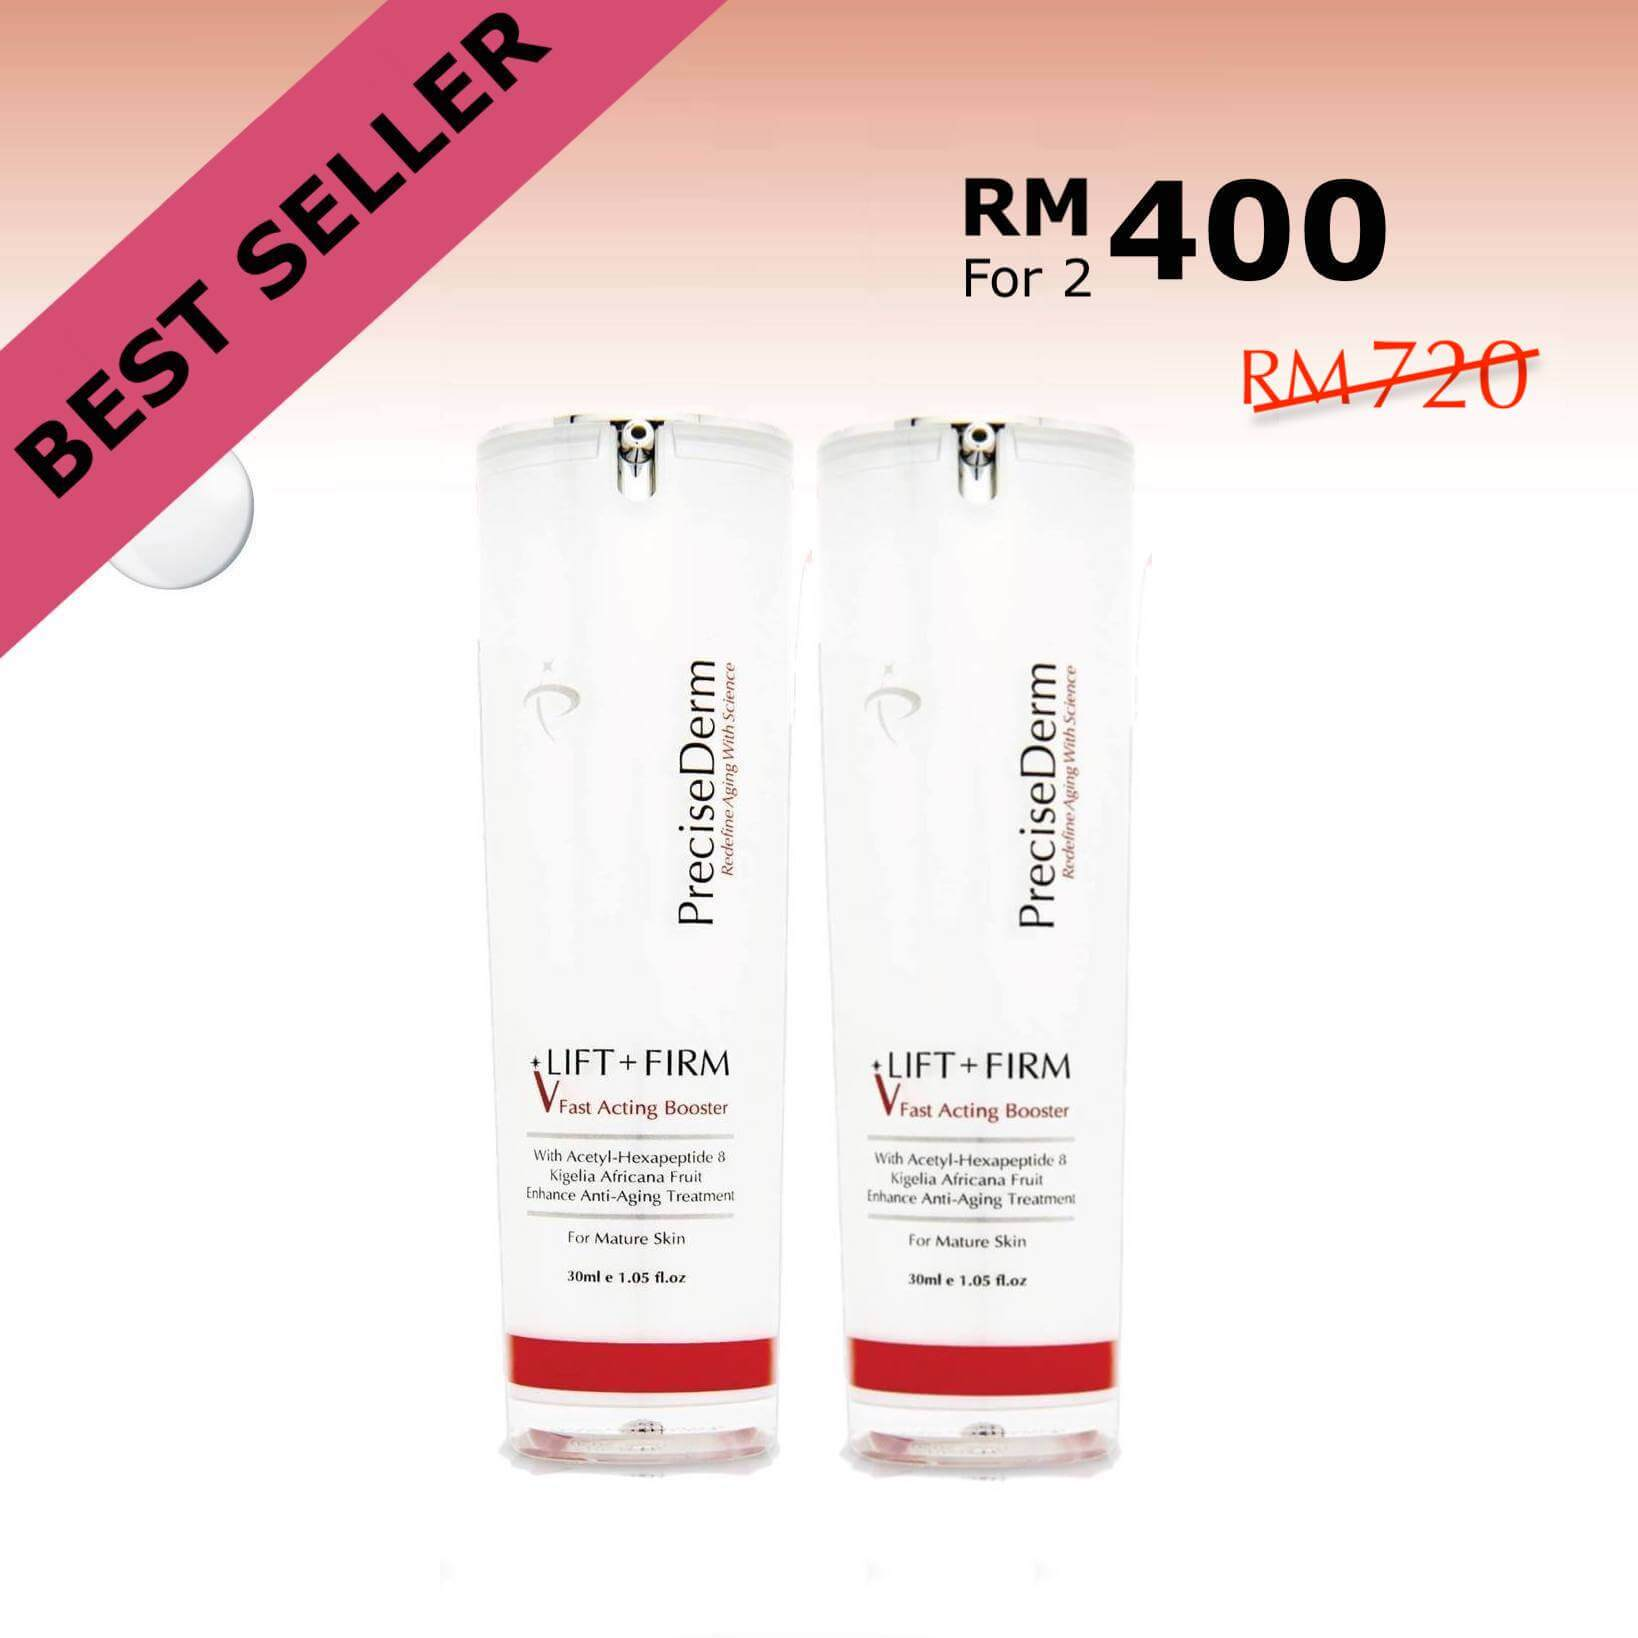 PreciseDerm Lift + Firm Fast Acting Booster Twin